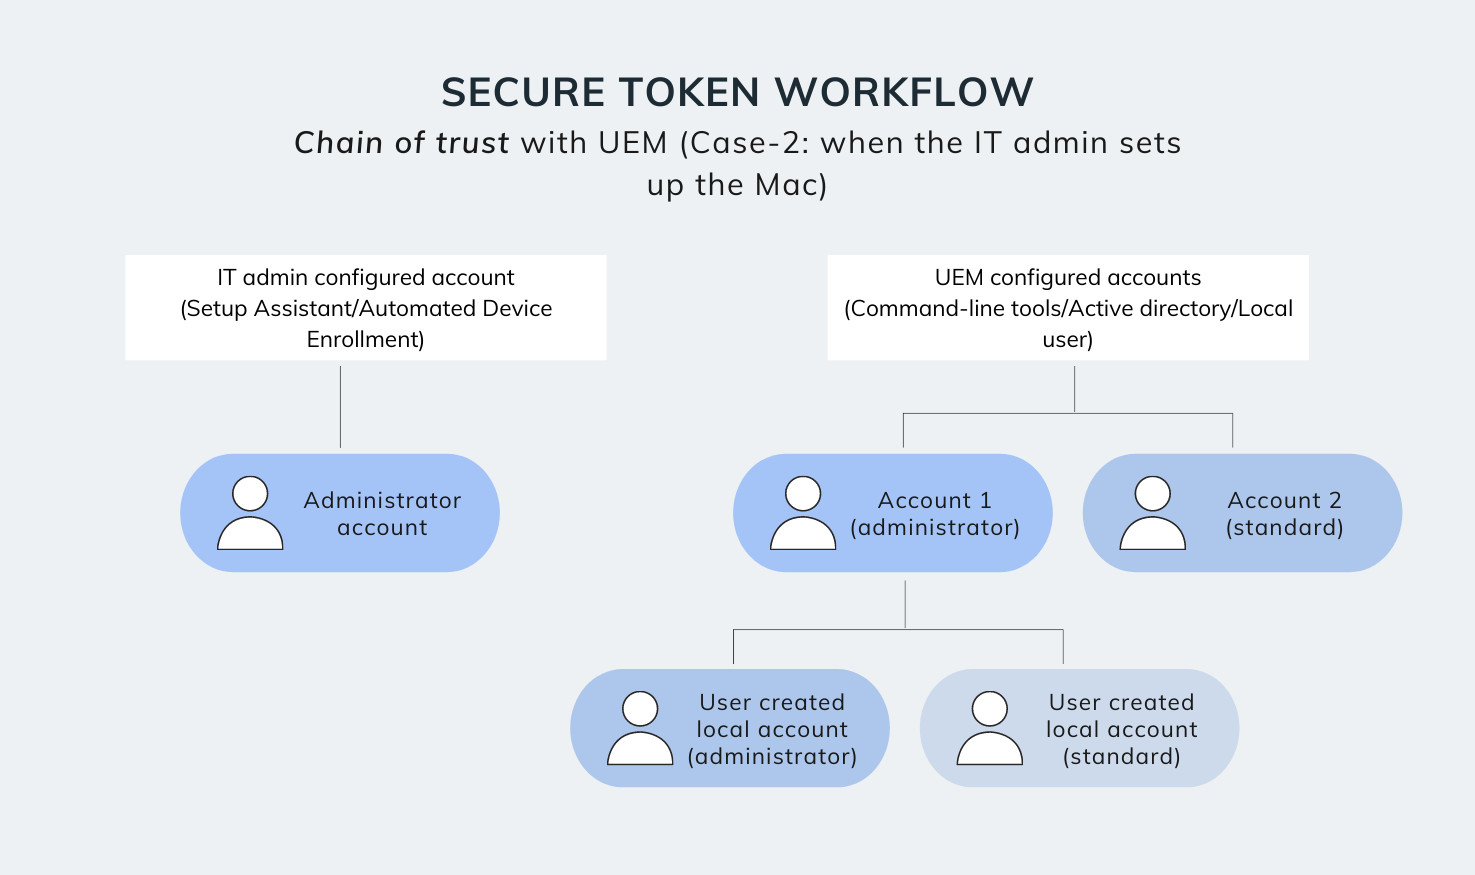 Secure token workflow with UEM - Case 2